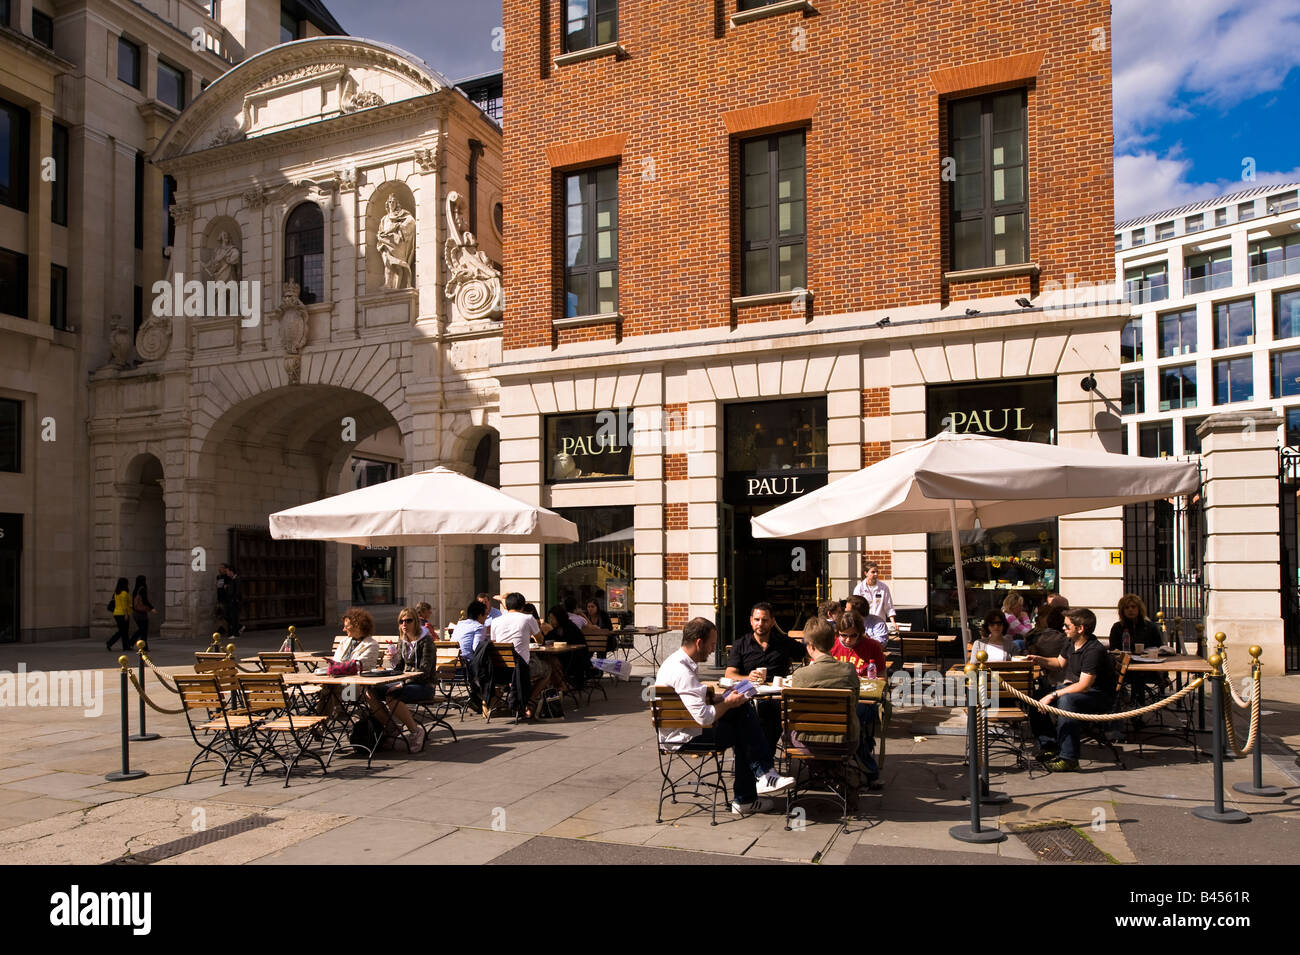 Paul Cafe bar in the city London United Kingdom - Stock Image